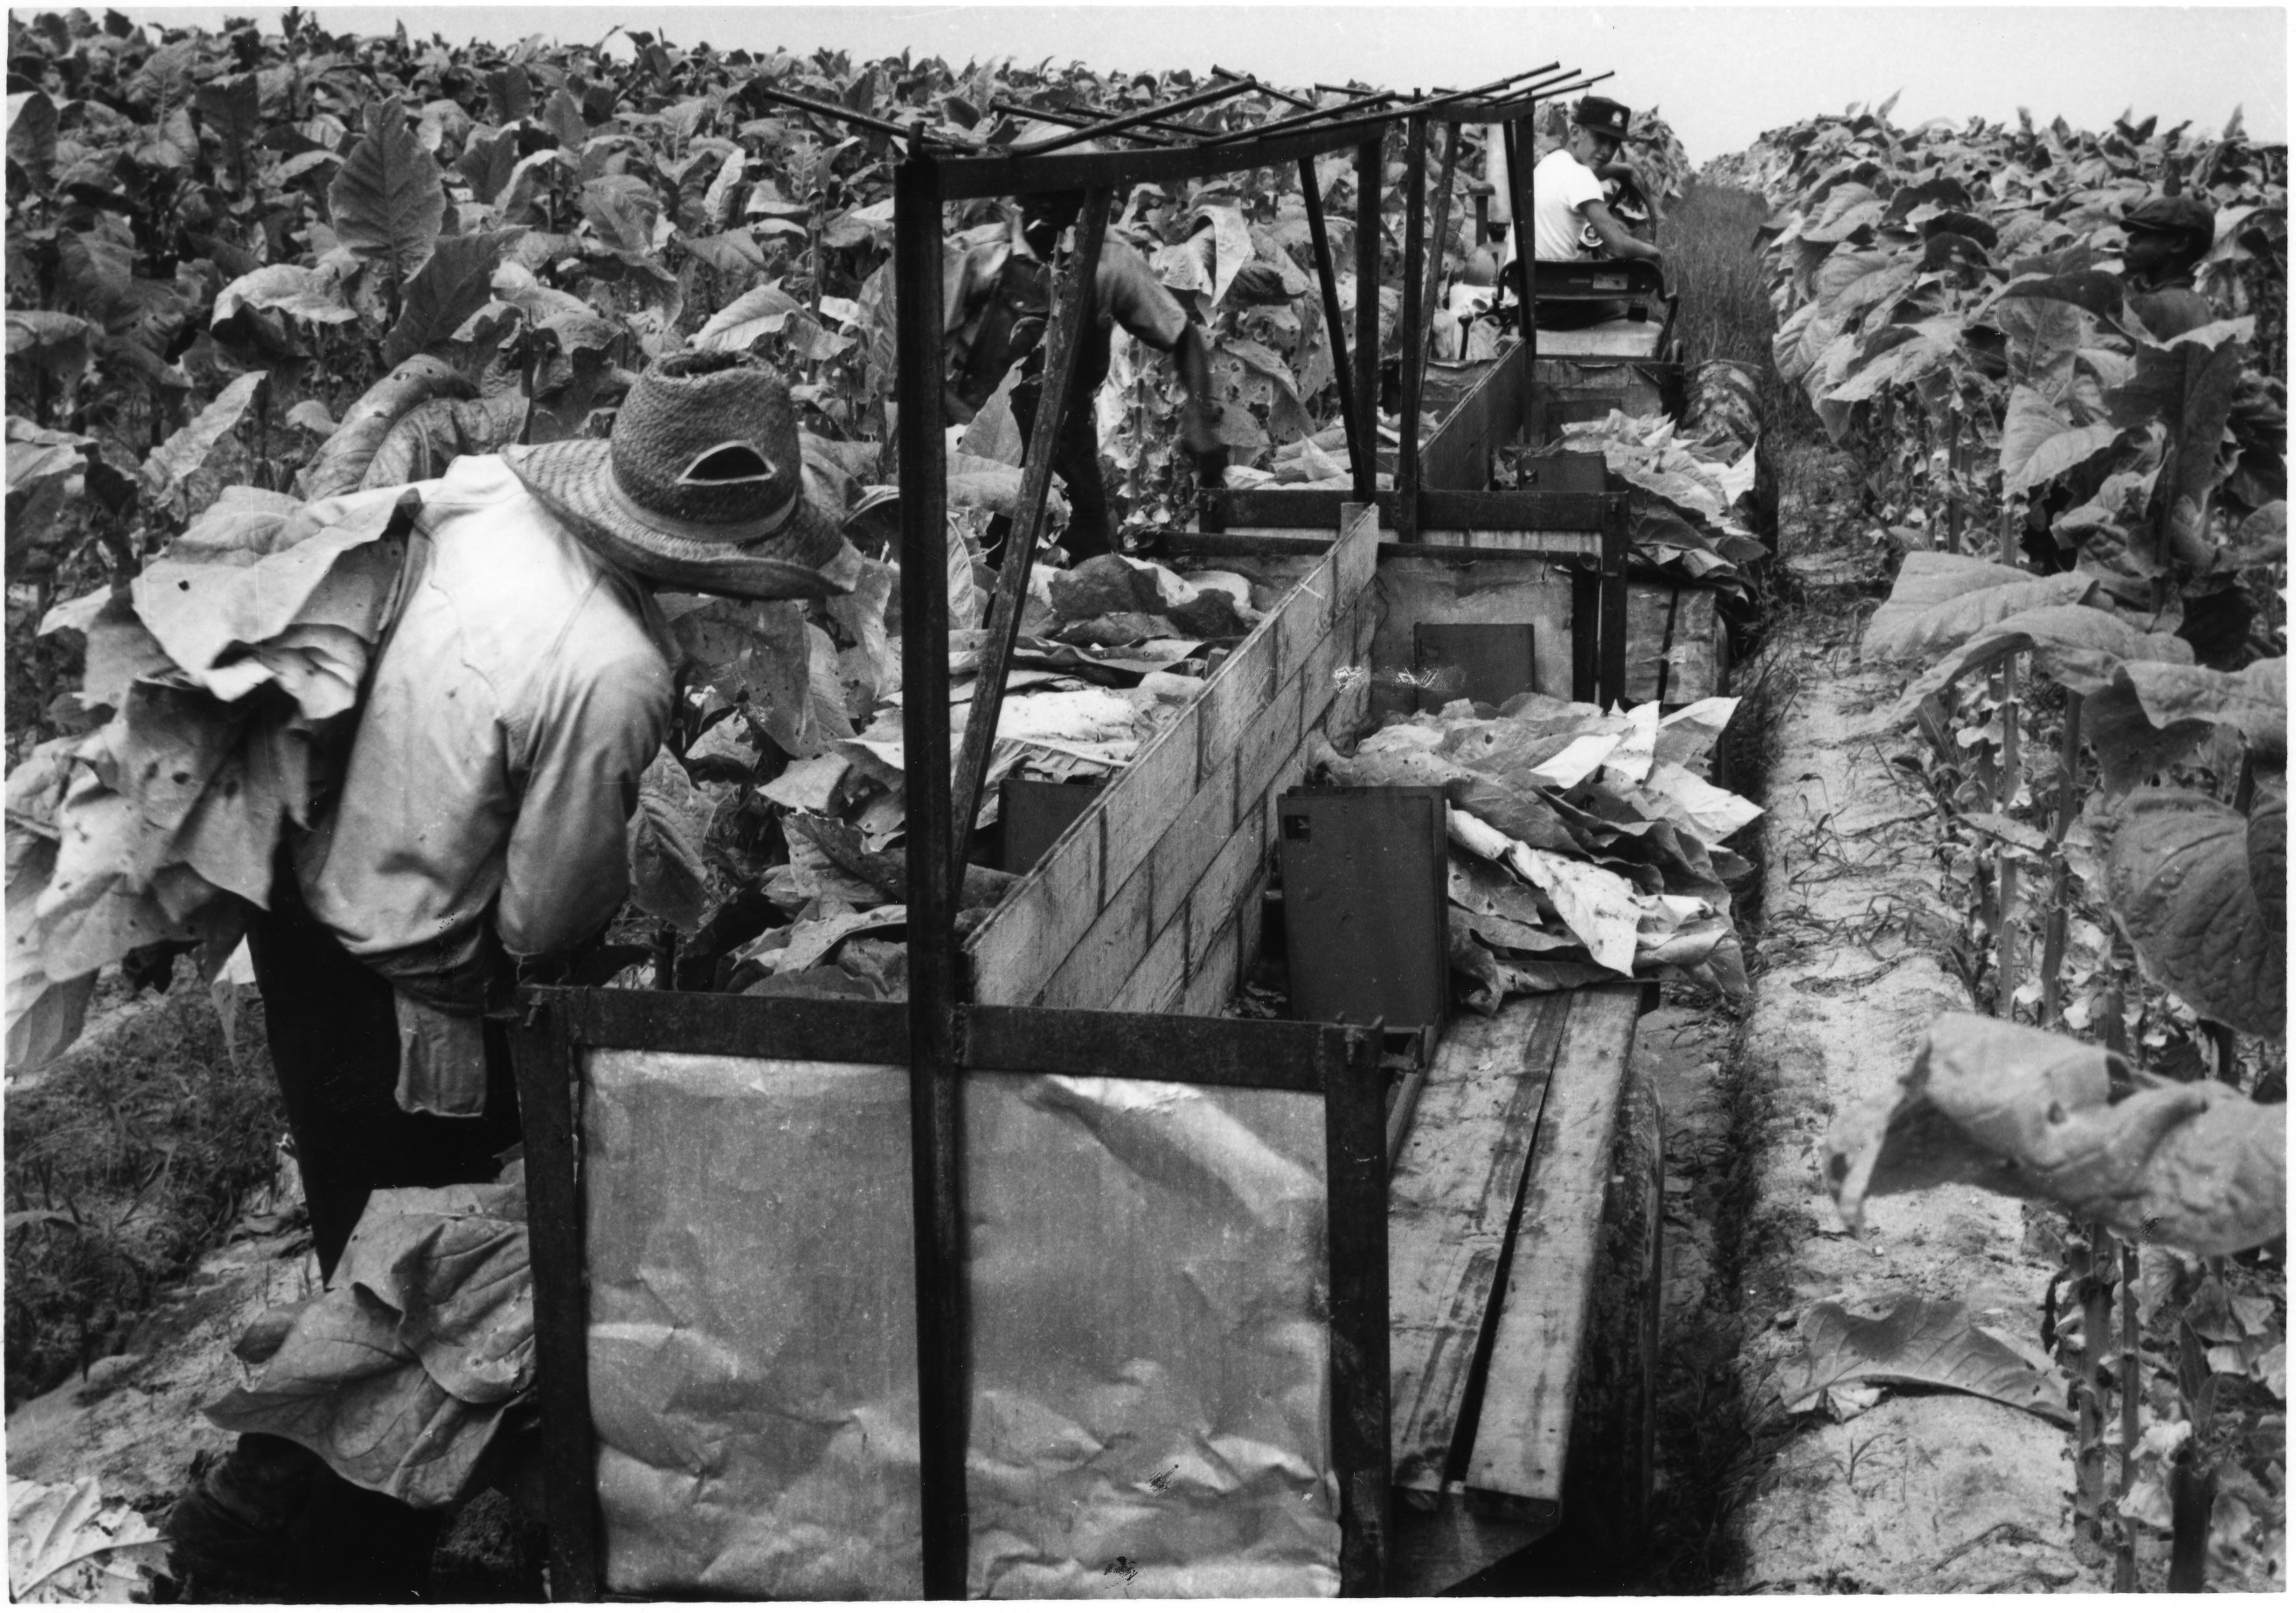 Farm workers harvesting tobacco and fitting leaves into bulk curing racks being pulled by tractor.